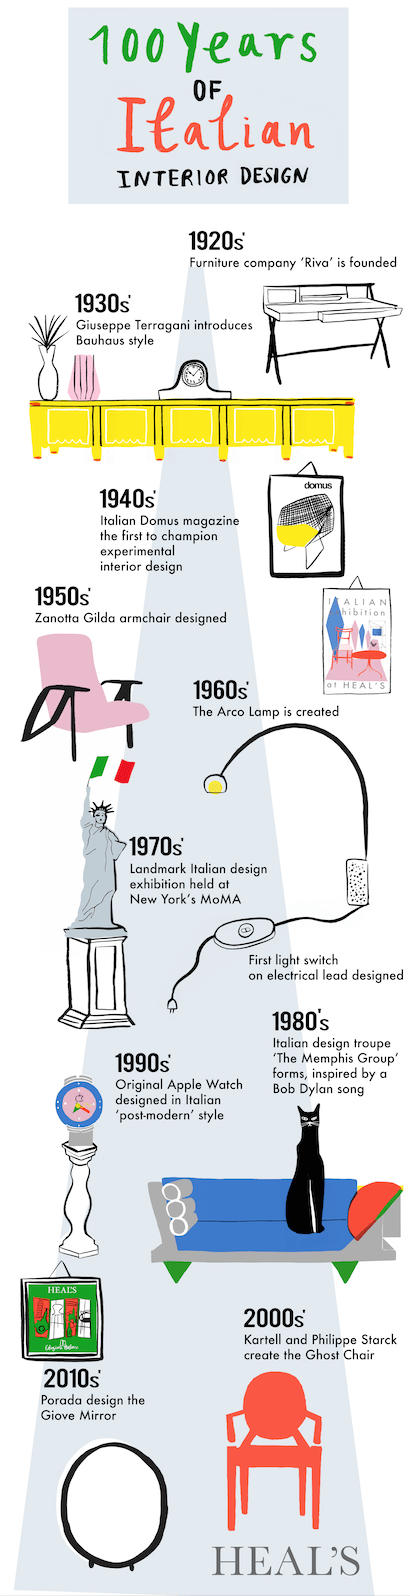 100 Years Of Italian Interior Design Timeline By Lucie Sheridan For Heals